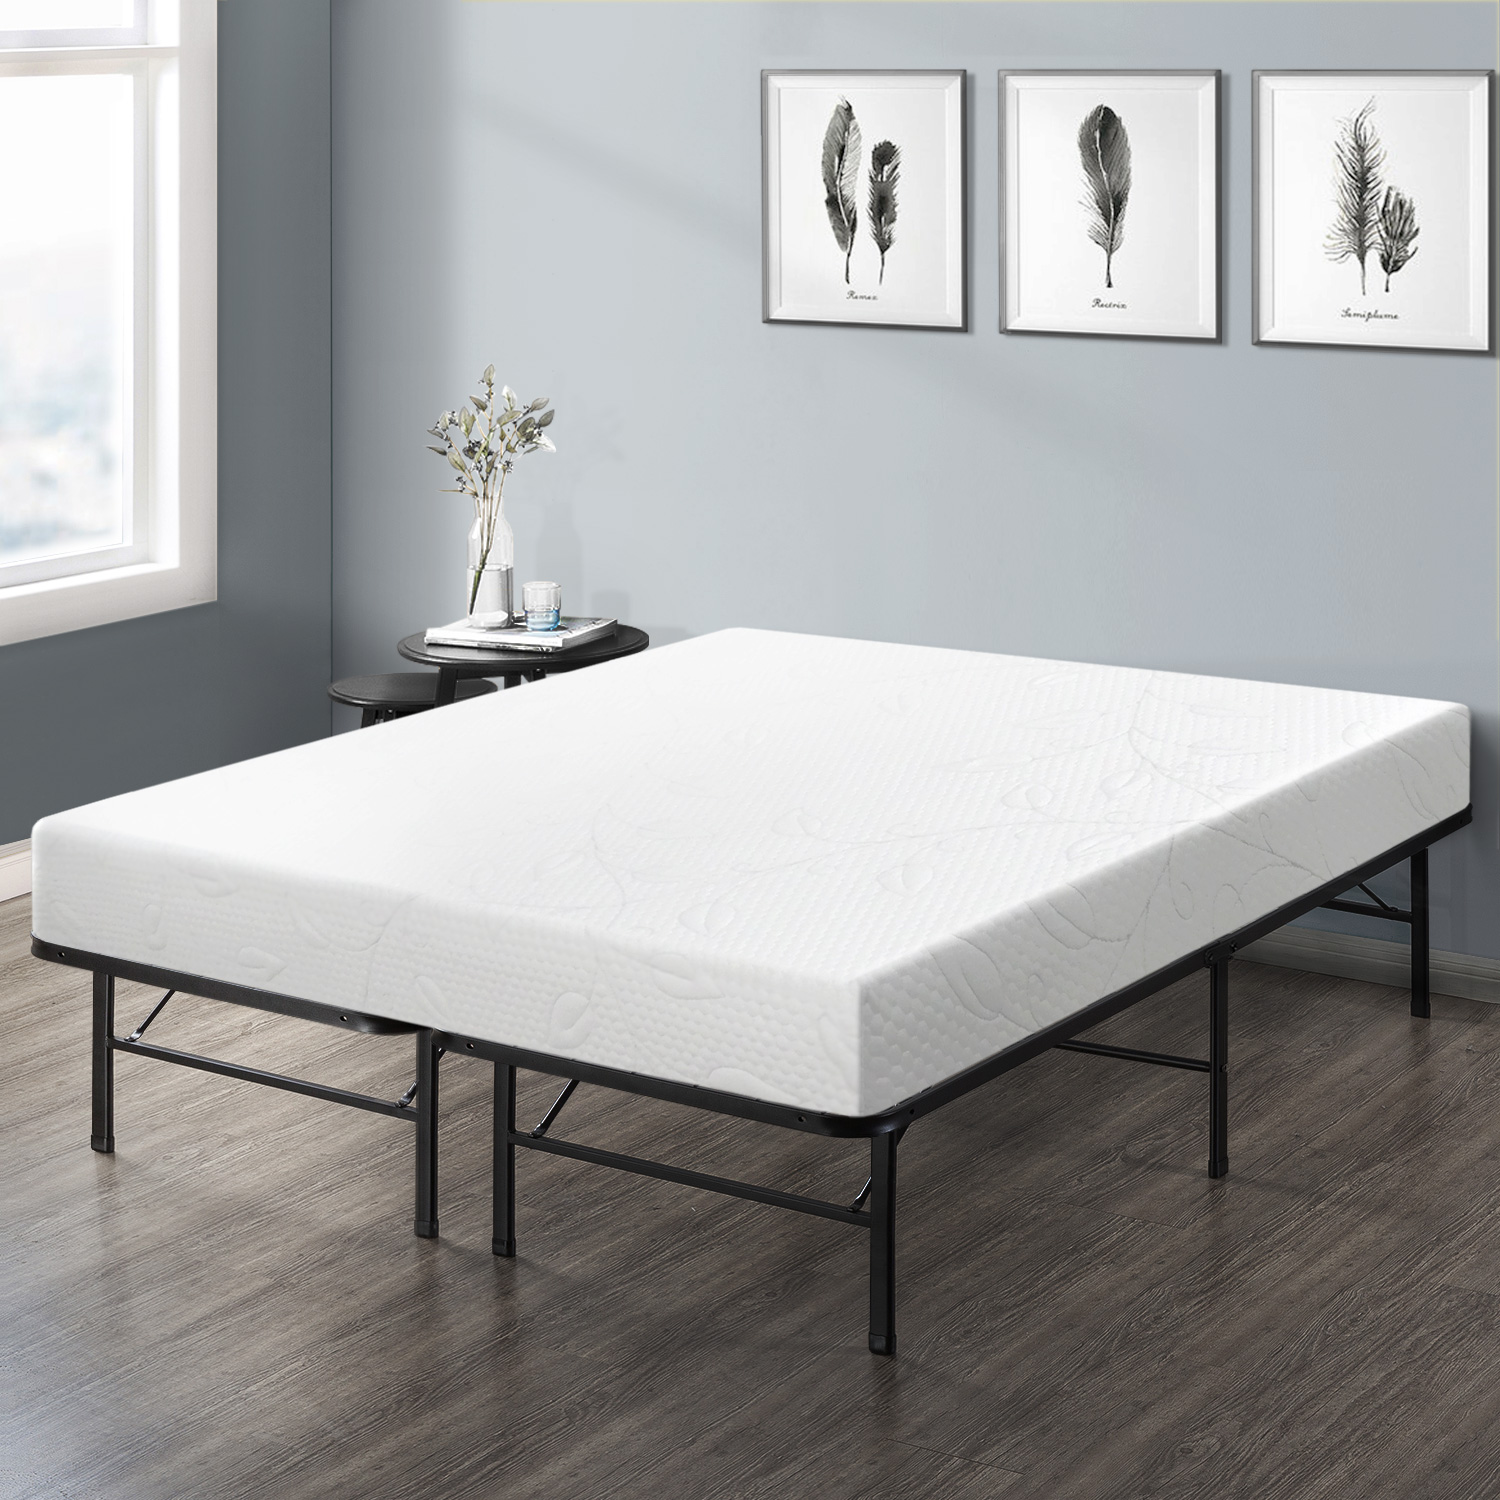 Mattress Platform Best Price Mattress 8 Inch Air Flow Memory Foam Mattress And 14 Inch Steel Platform Bed Frame Set Twin